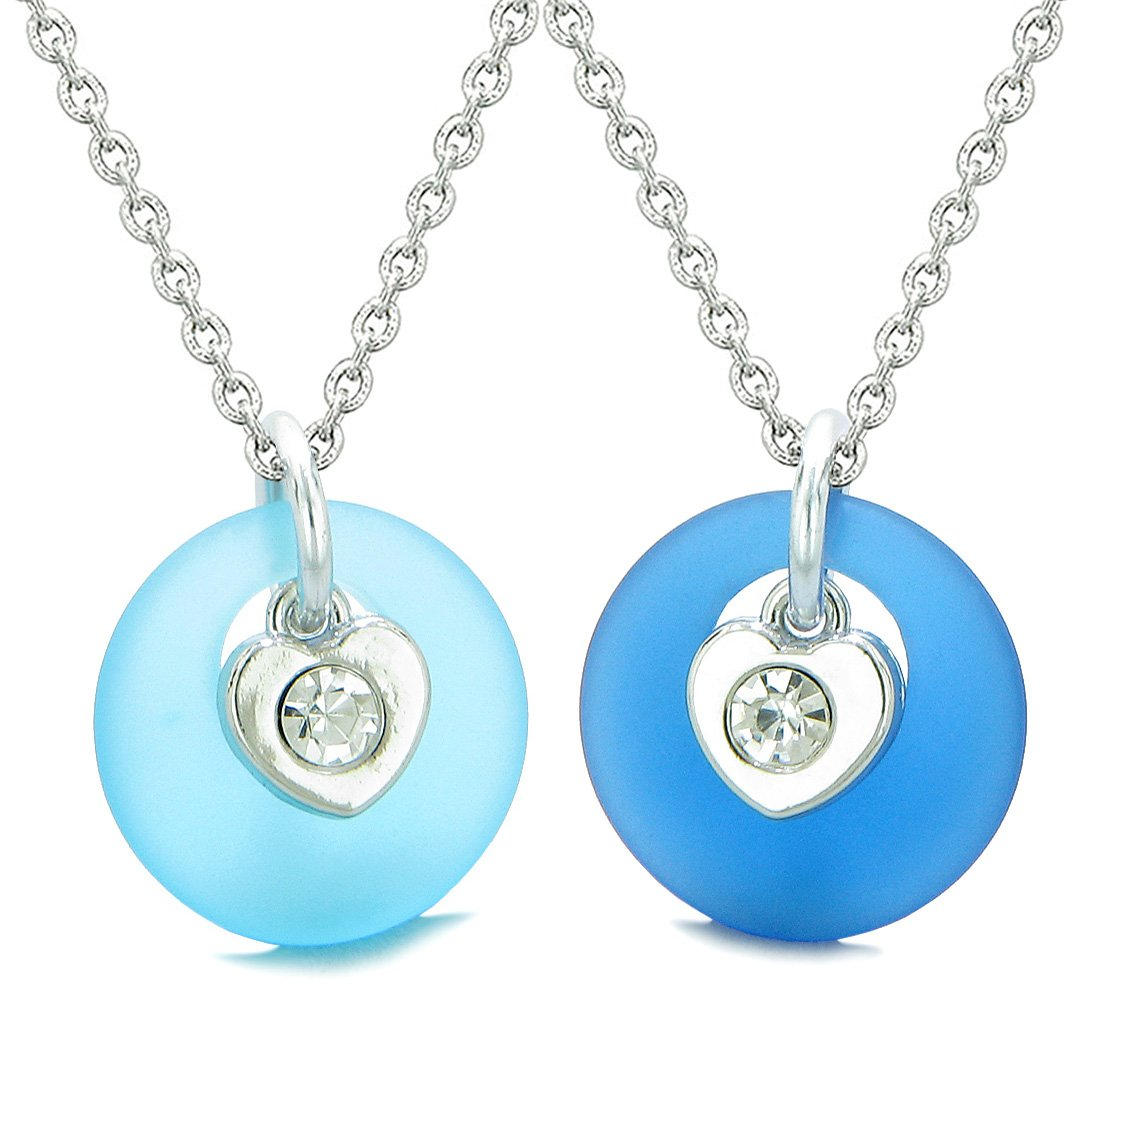 Sea Glass Lucky Donut Crystal Heart Charm Sky and Ocean Blue Love Couples BFF Set Amulet Necklaces